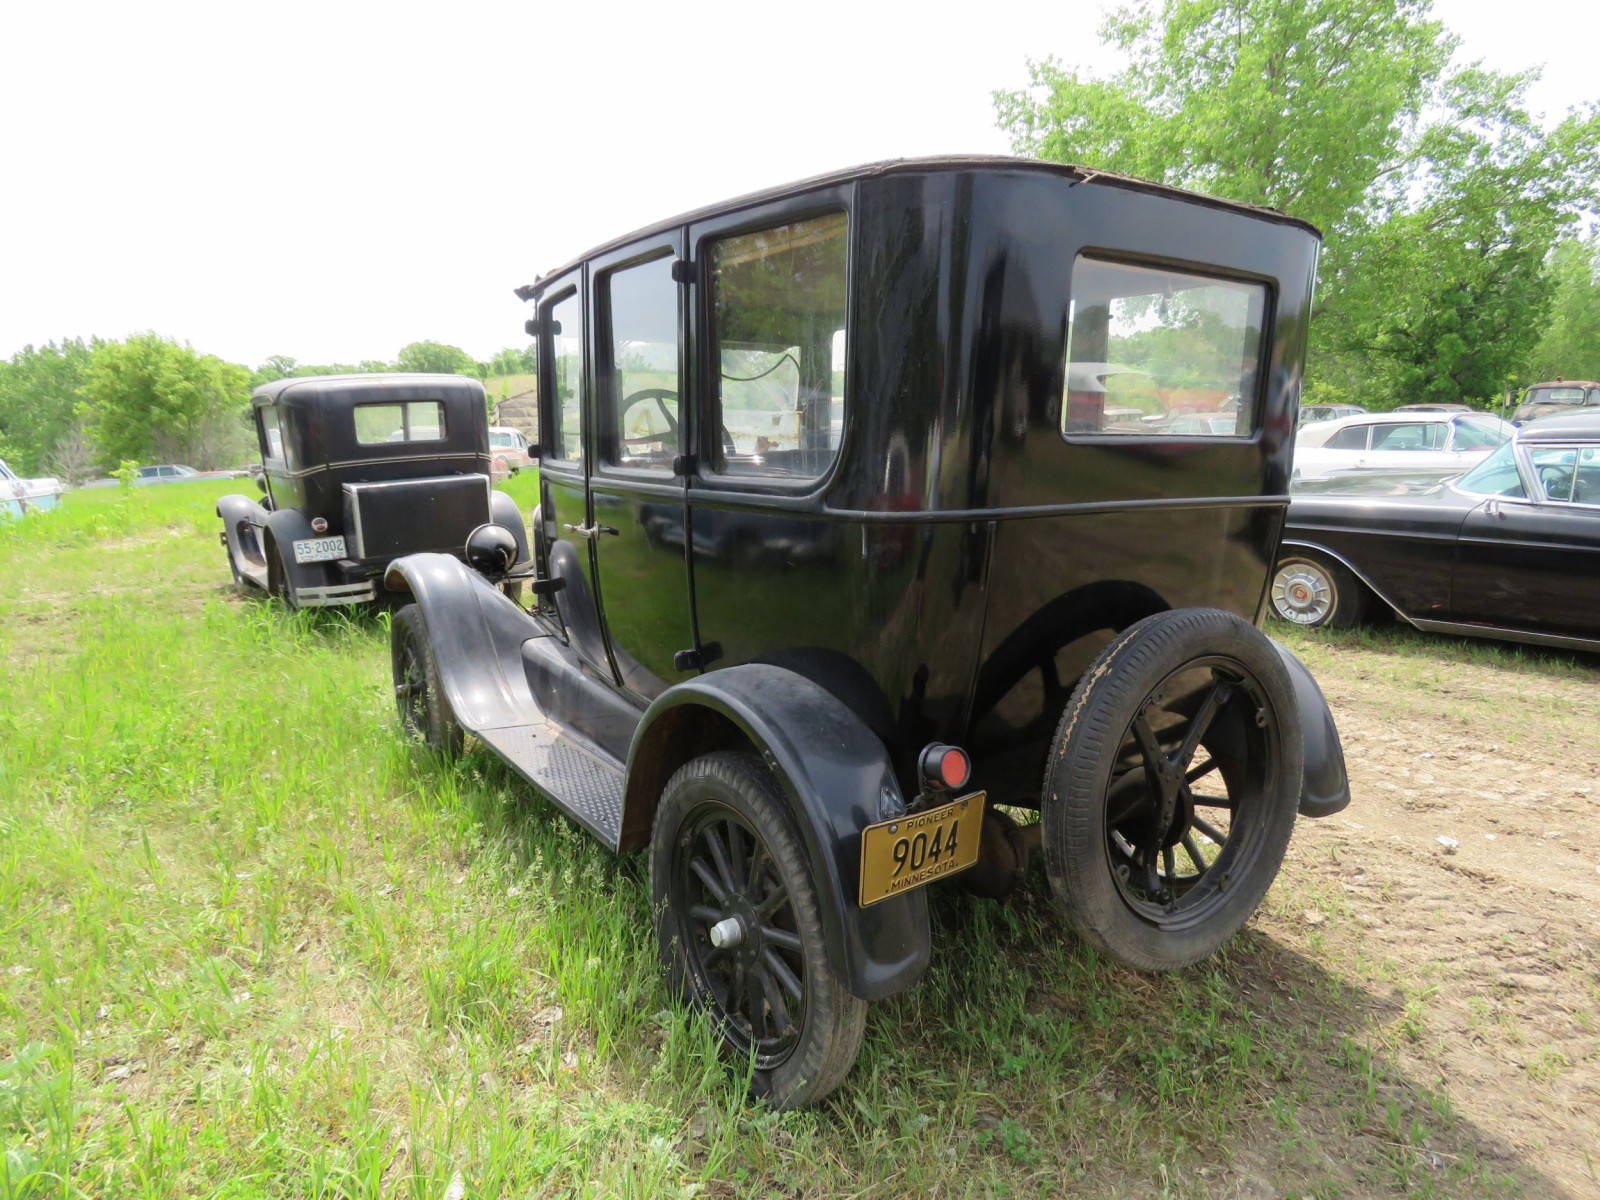 Ford Model T 4dr Sedan - Image 5